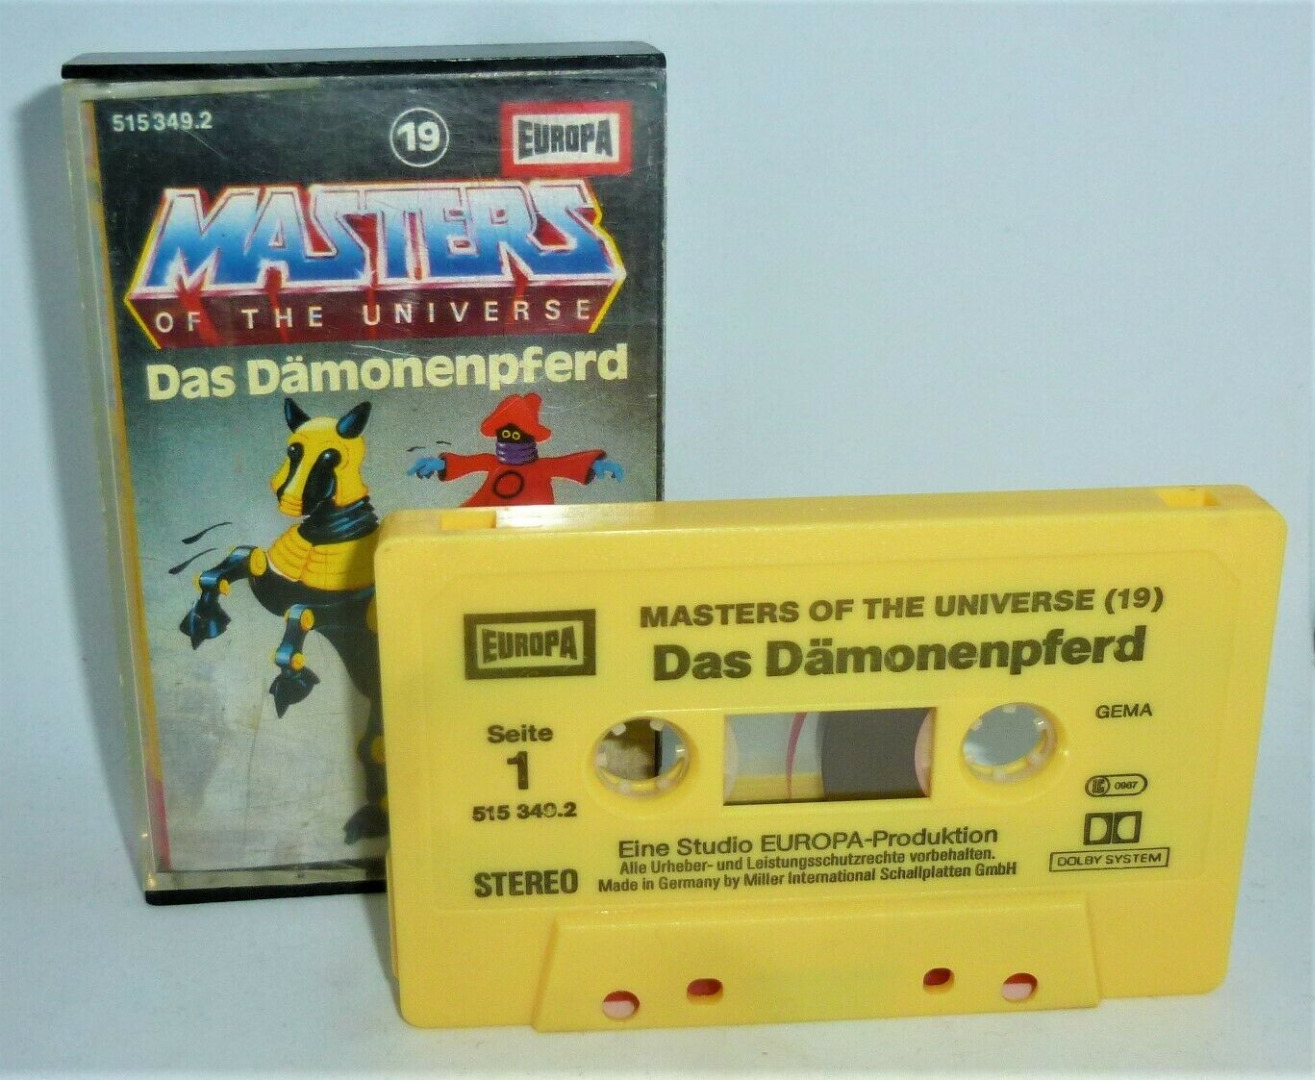 Masters of the Universe Das Dämonenpferd